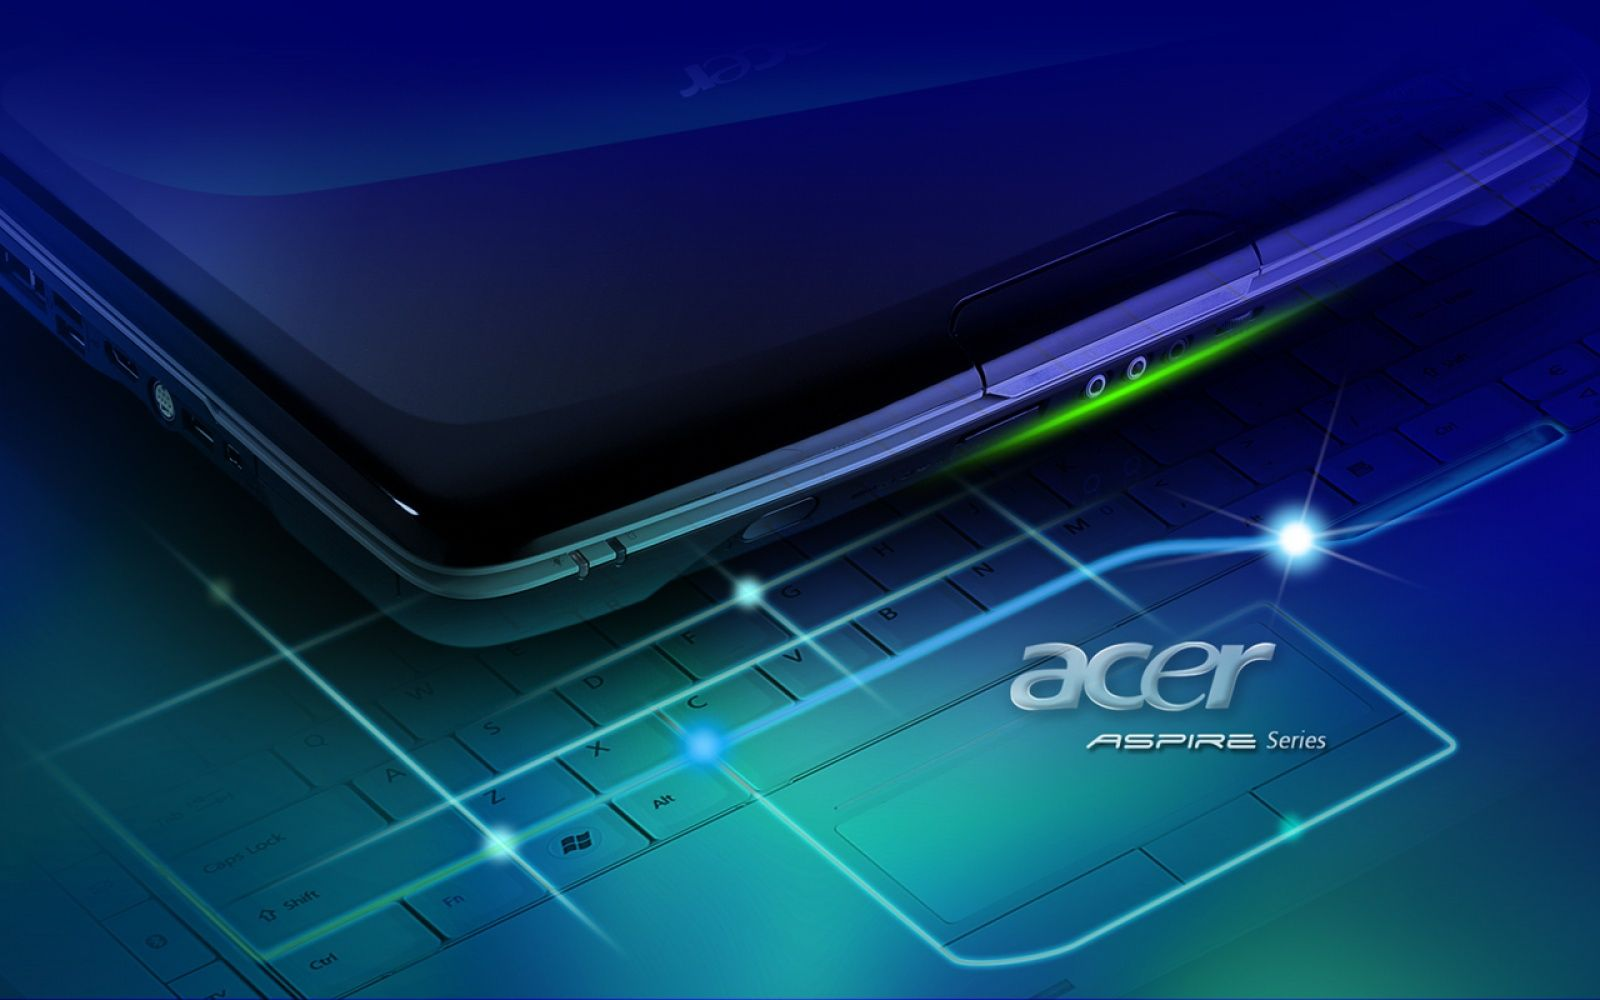 D Acer Wallpaper For Pc In 2019 Acer Desktop Hd Wallpaper